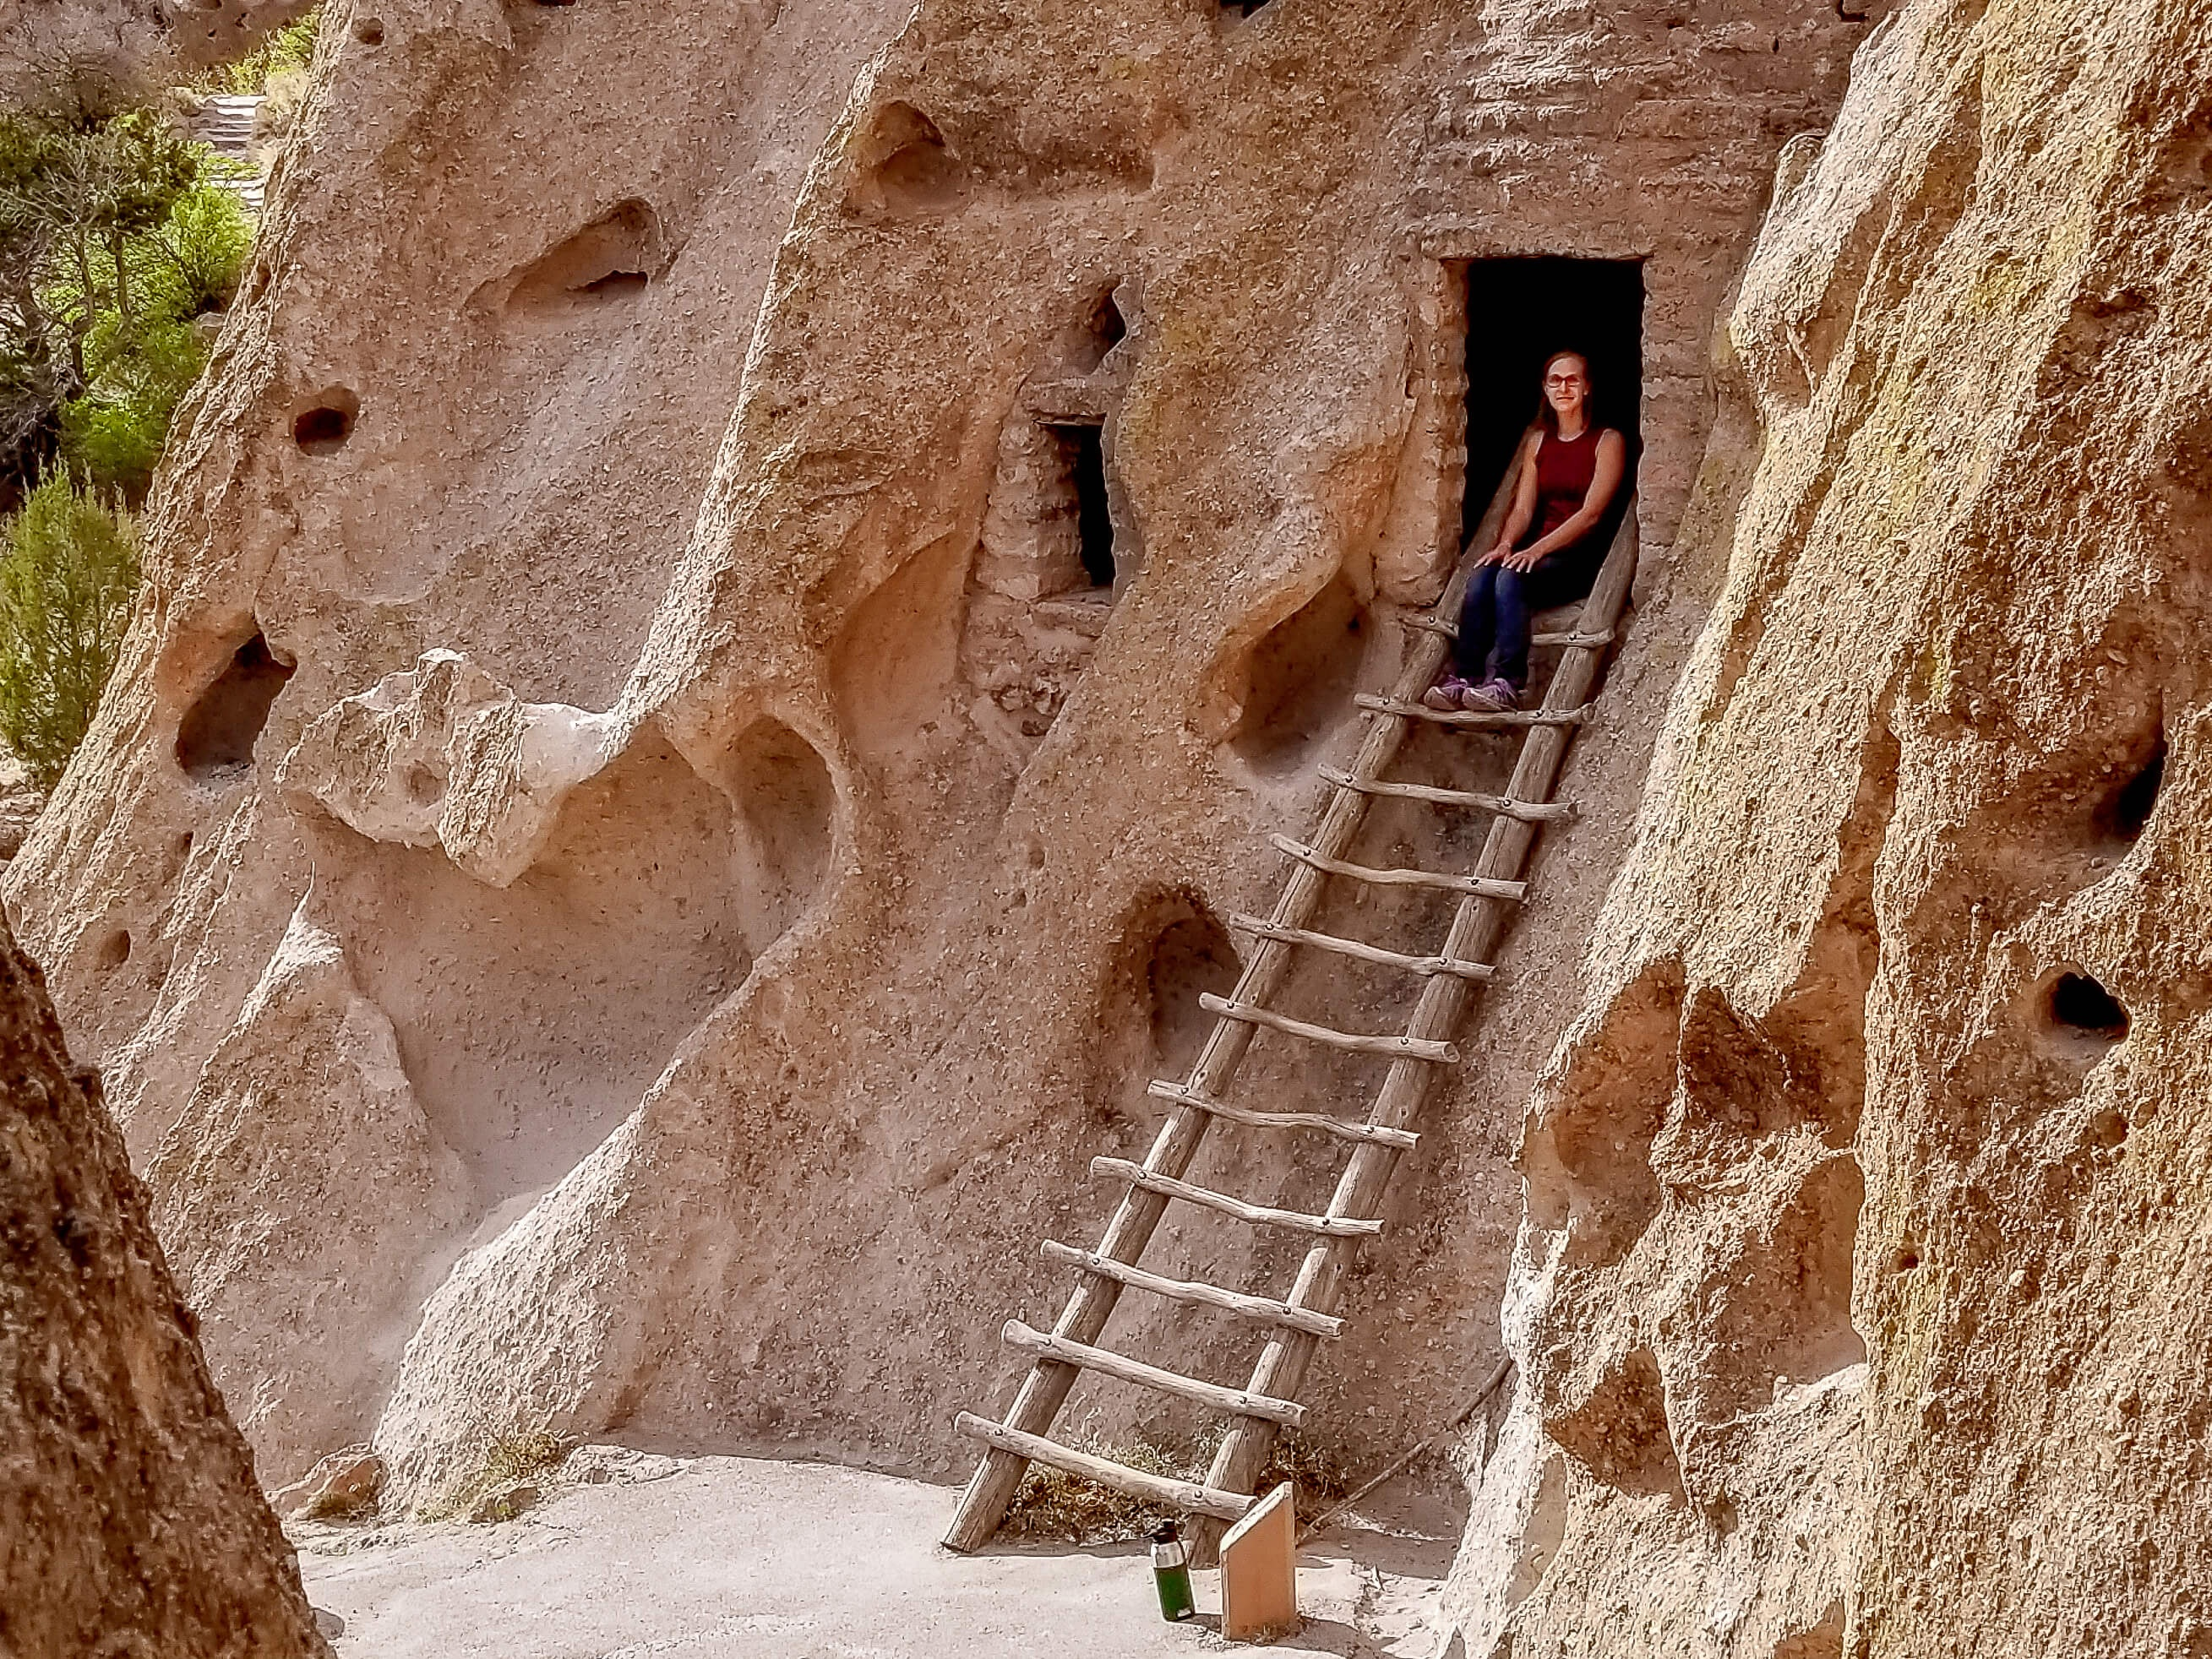 Liz sitting in cliff dwelling with stair Bandelier National Monument